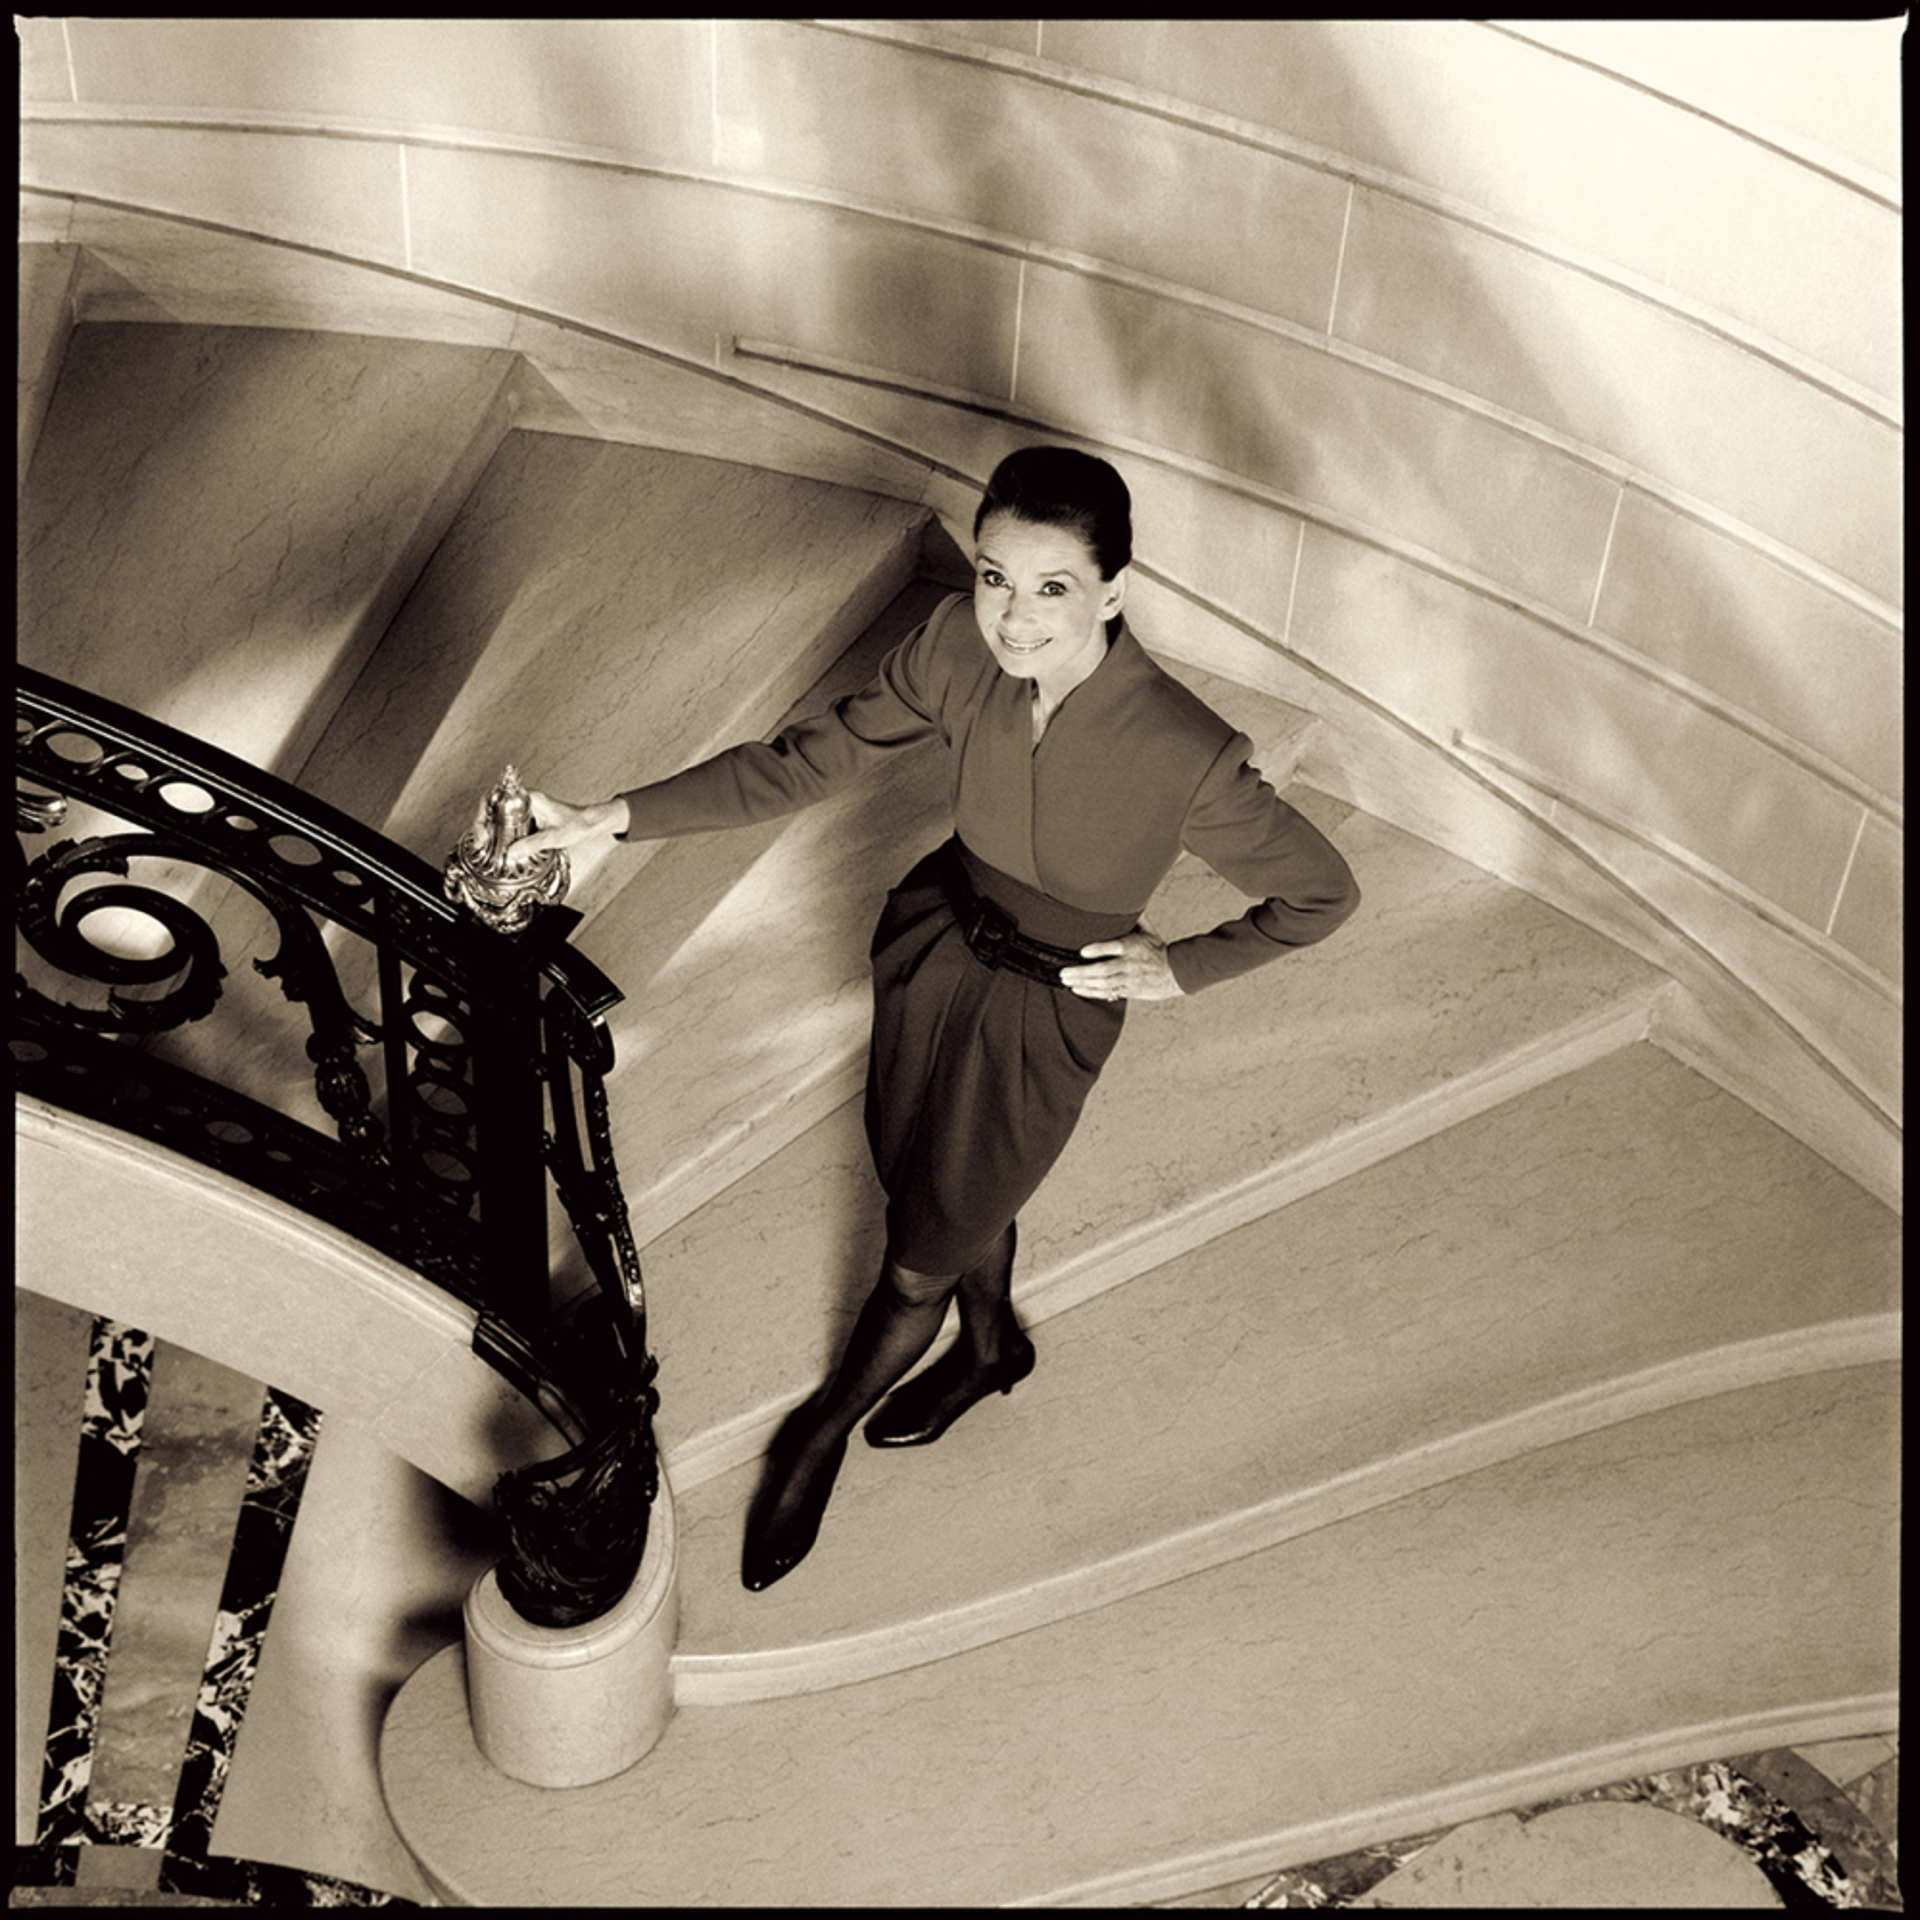 89003 Audrey Hepburn Smiling in Stairway Sepia by Timothy White